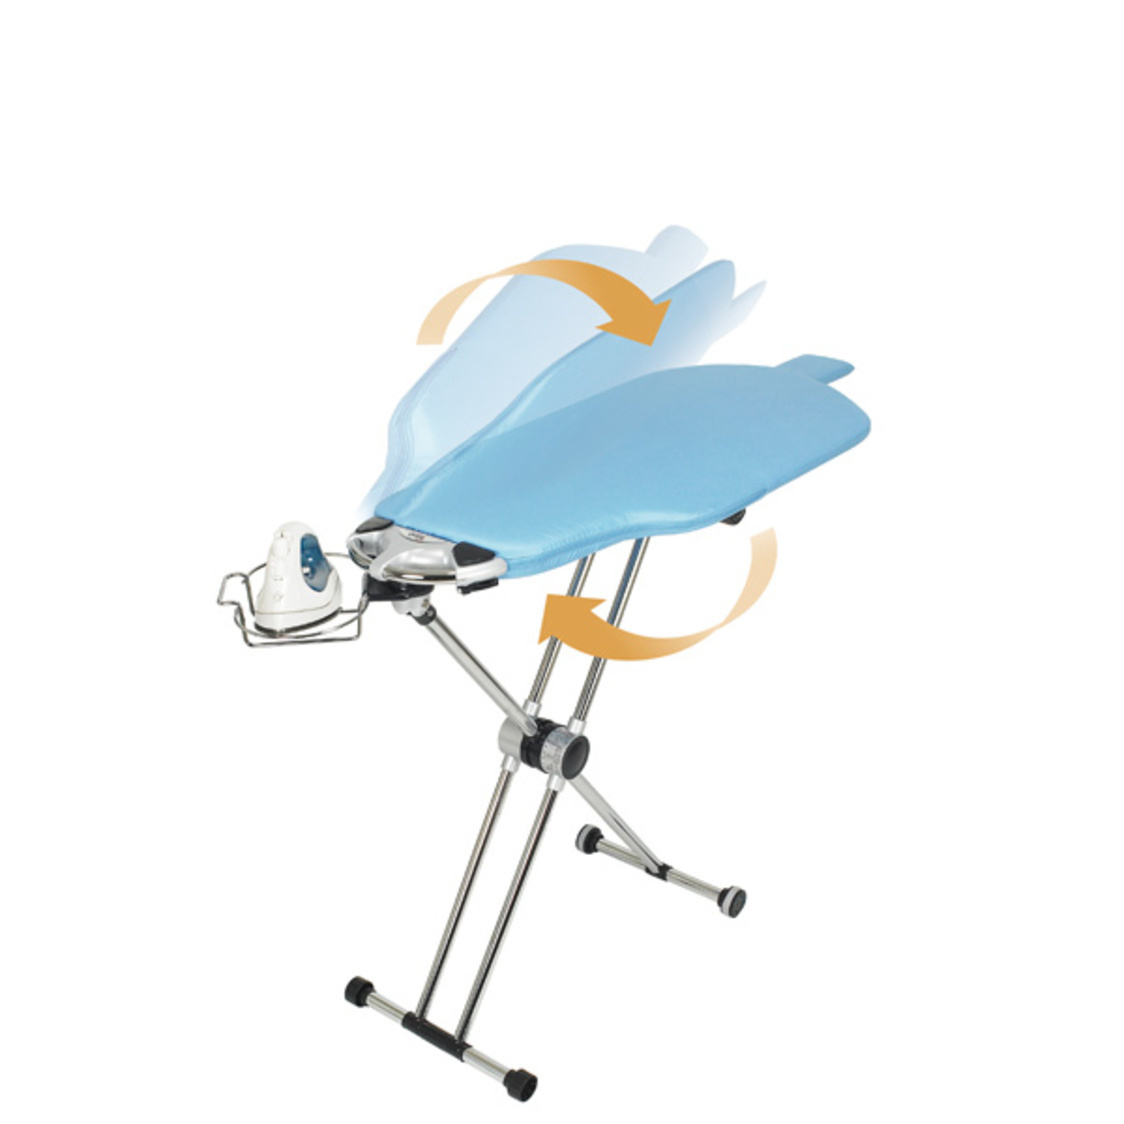 Rotational Ironing Board with Wheels EZ71